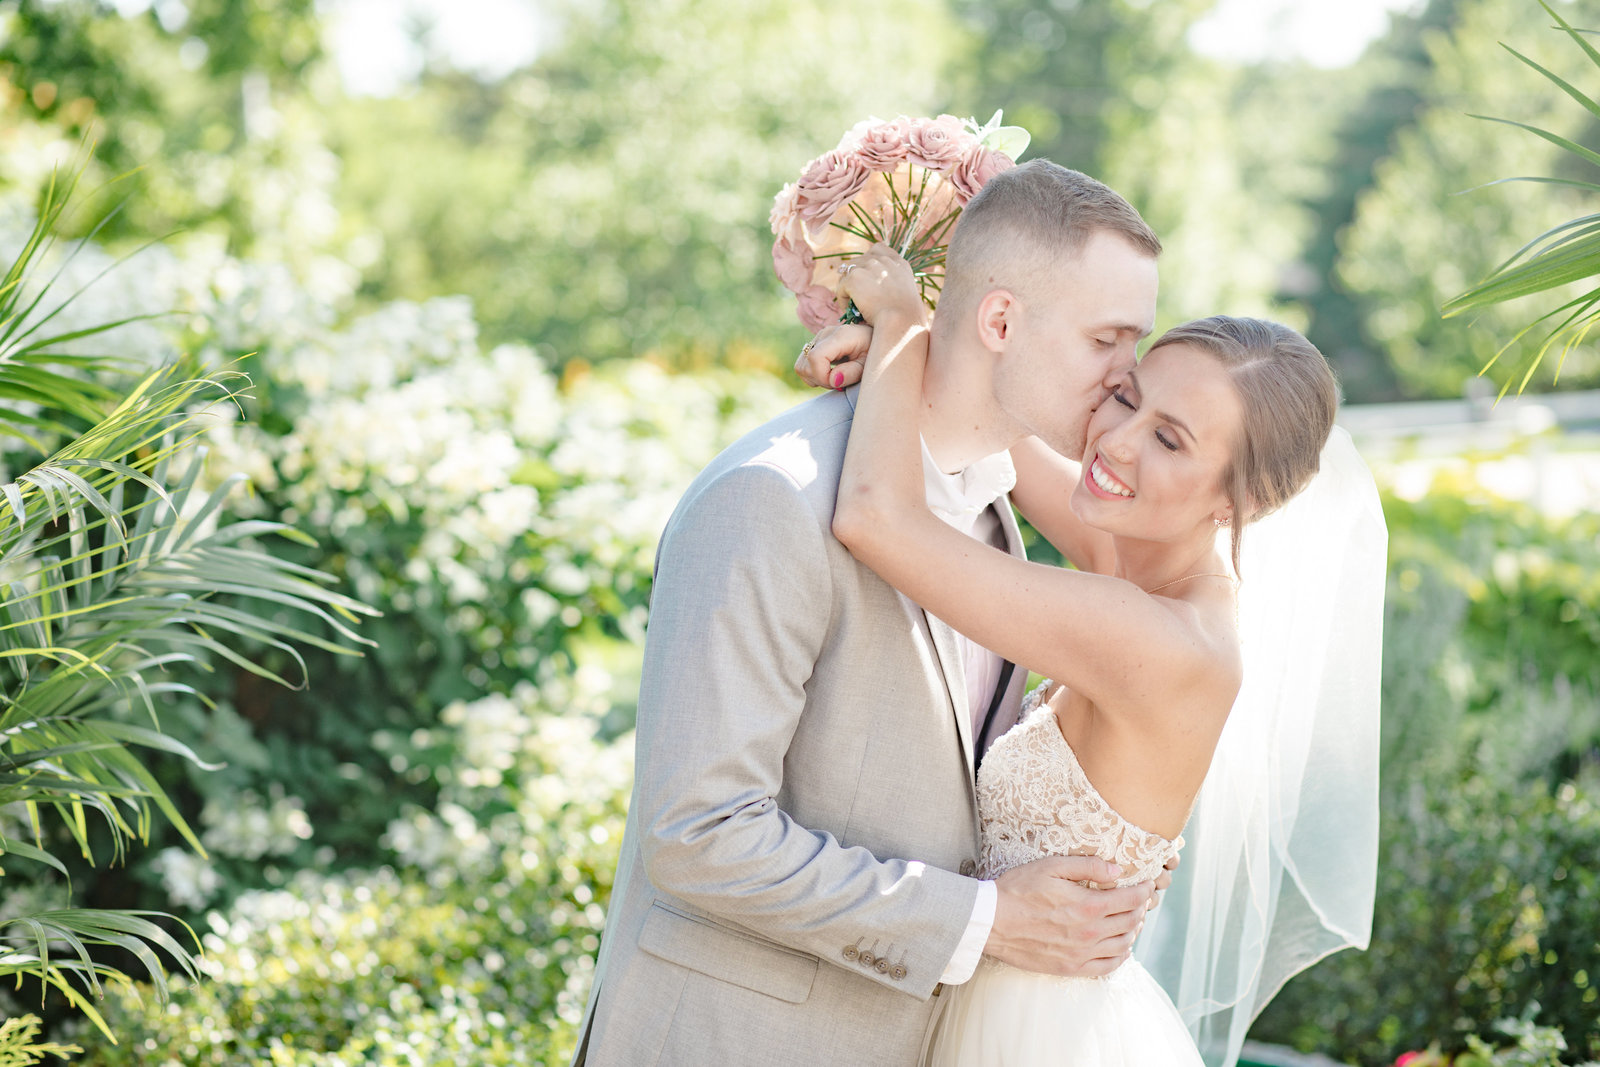 st-louis-wedding-photography-genuine-emotional00002